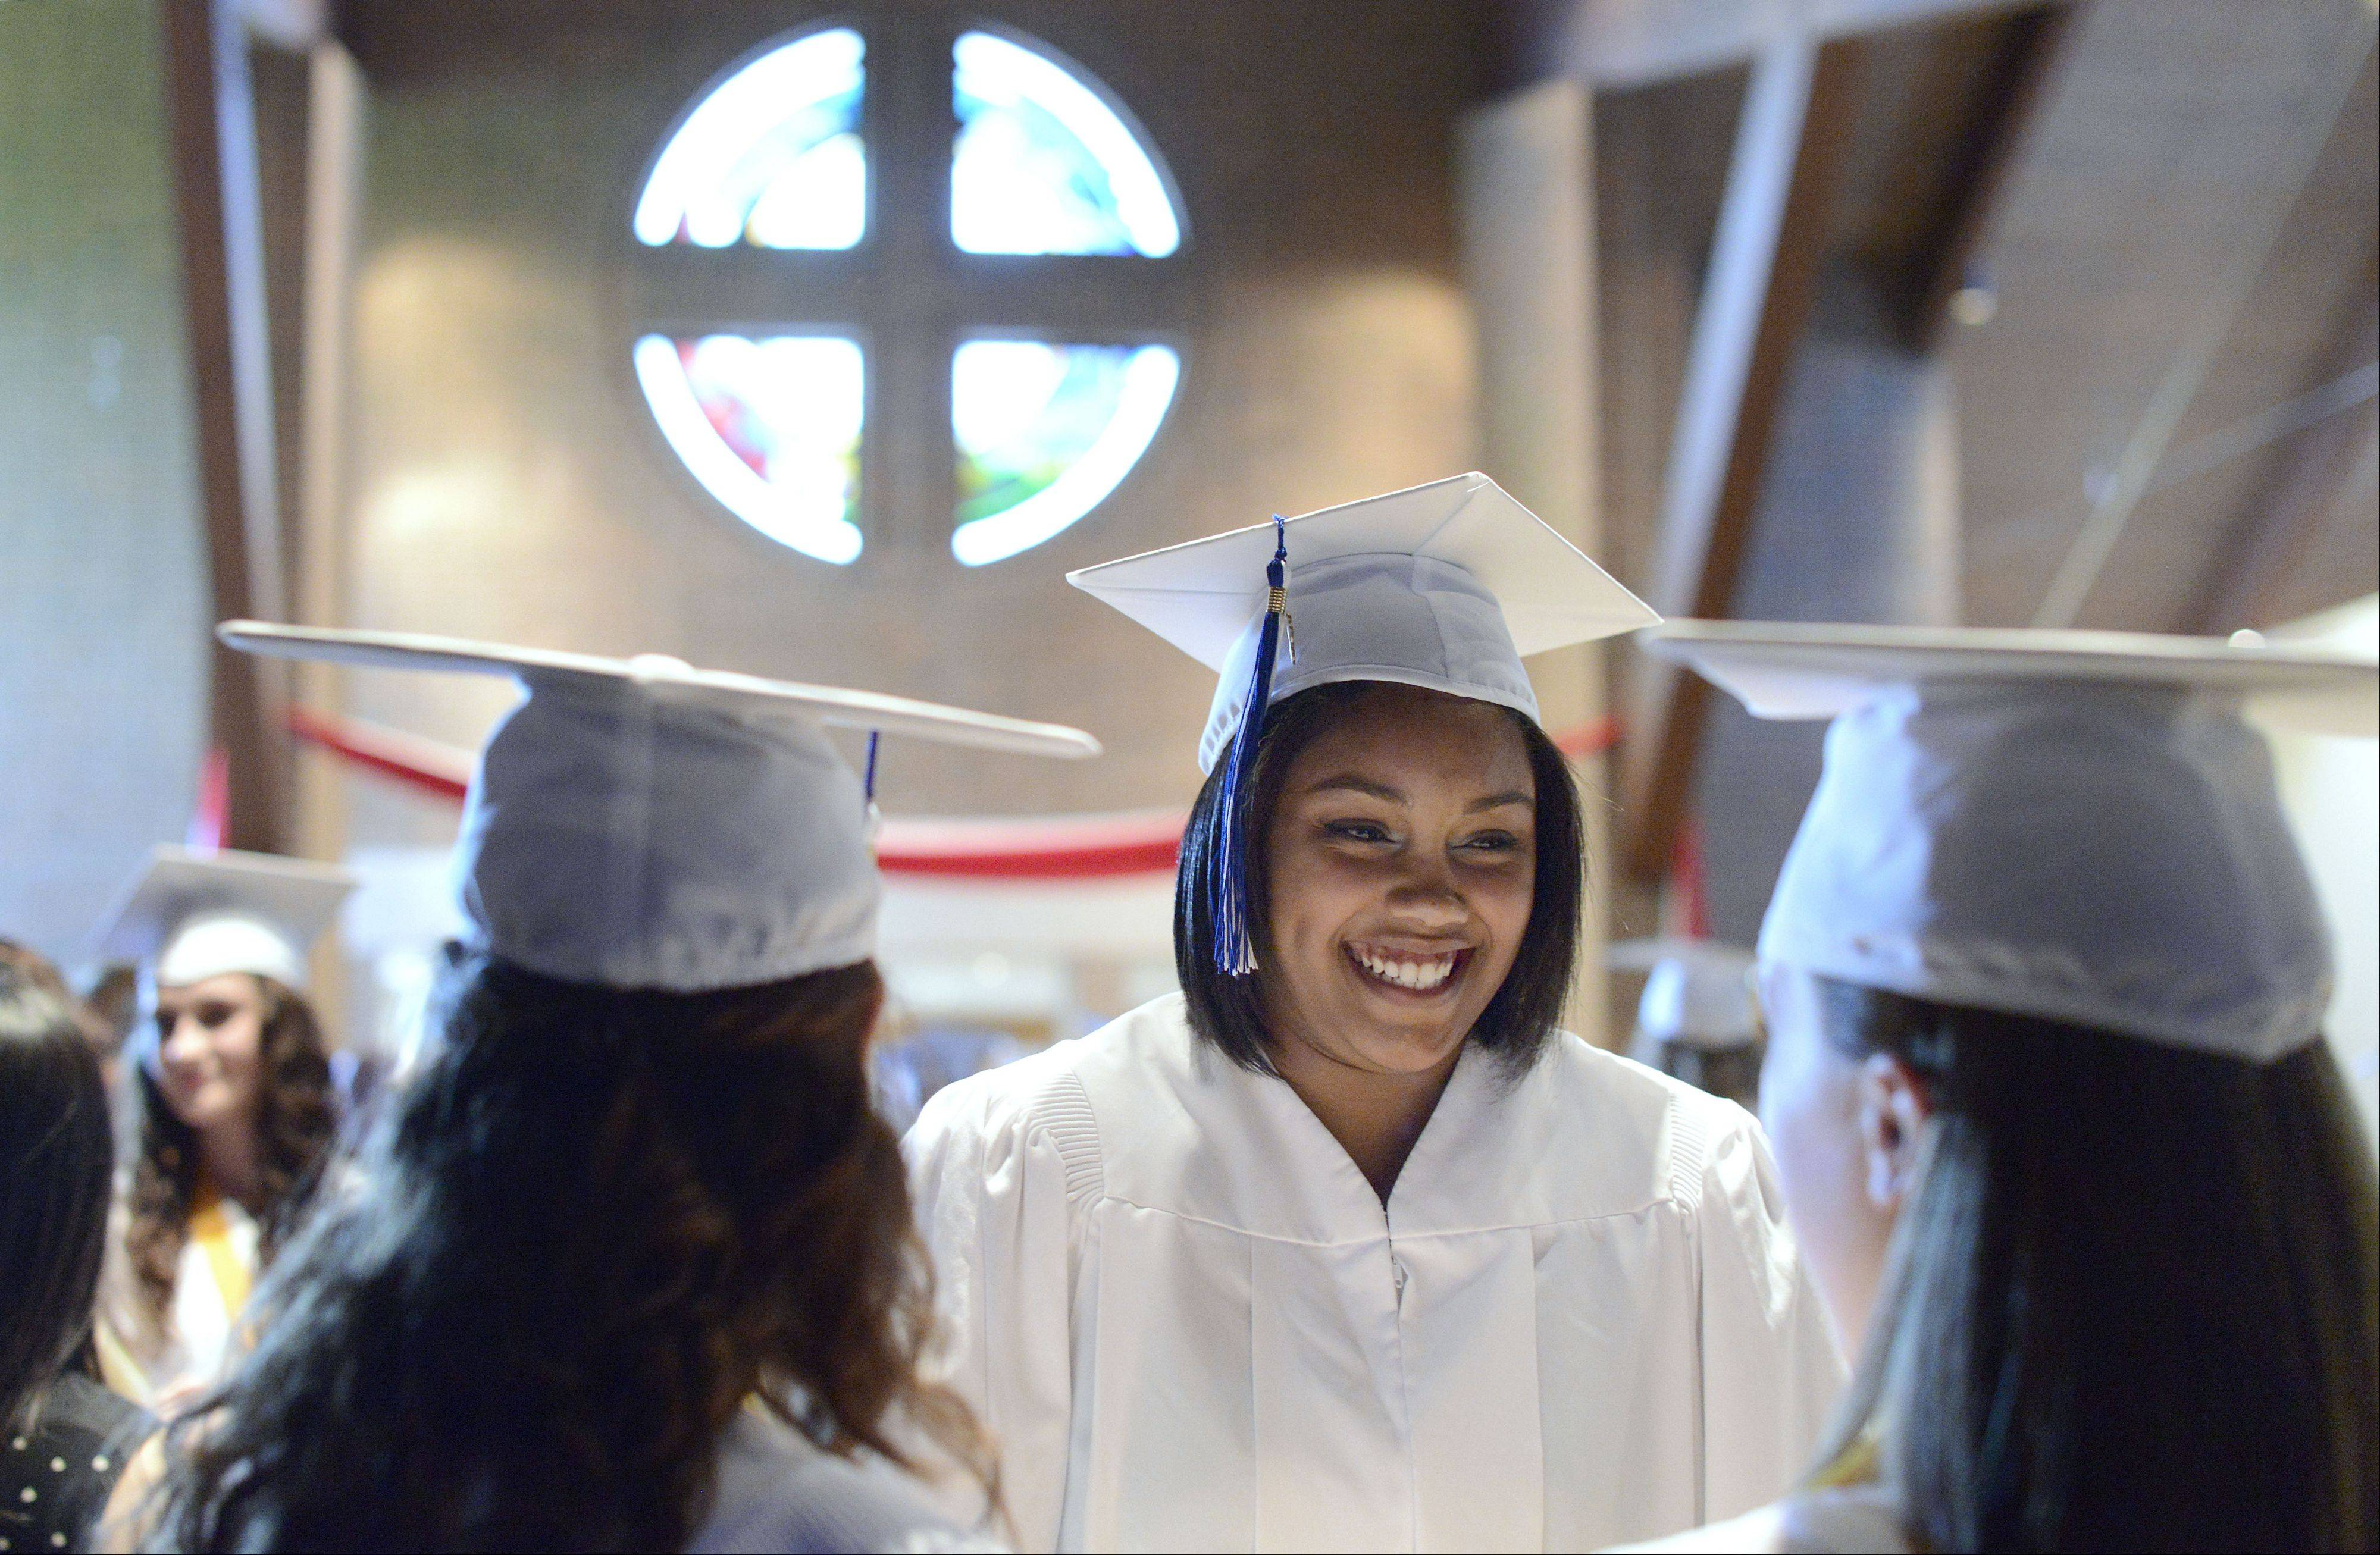 Briana Flagg, of Naperville, facing, chats with friends Kayla Emory of Aurora and Meredith Crantz of North Aurora, all 18, as their wait for the start of their graduation ceremony.